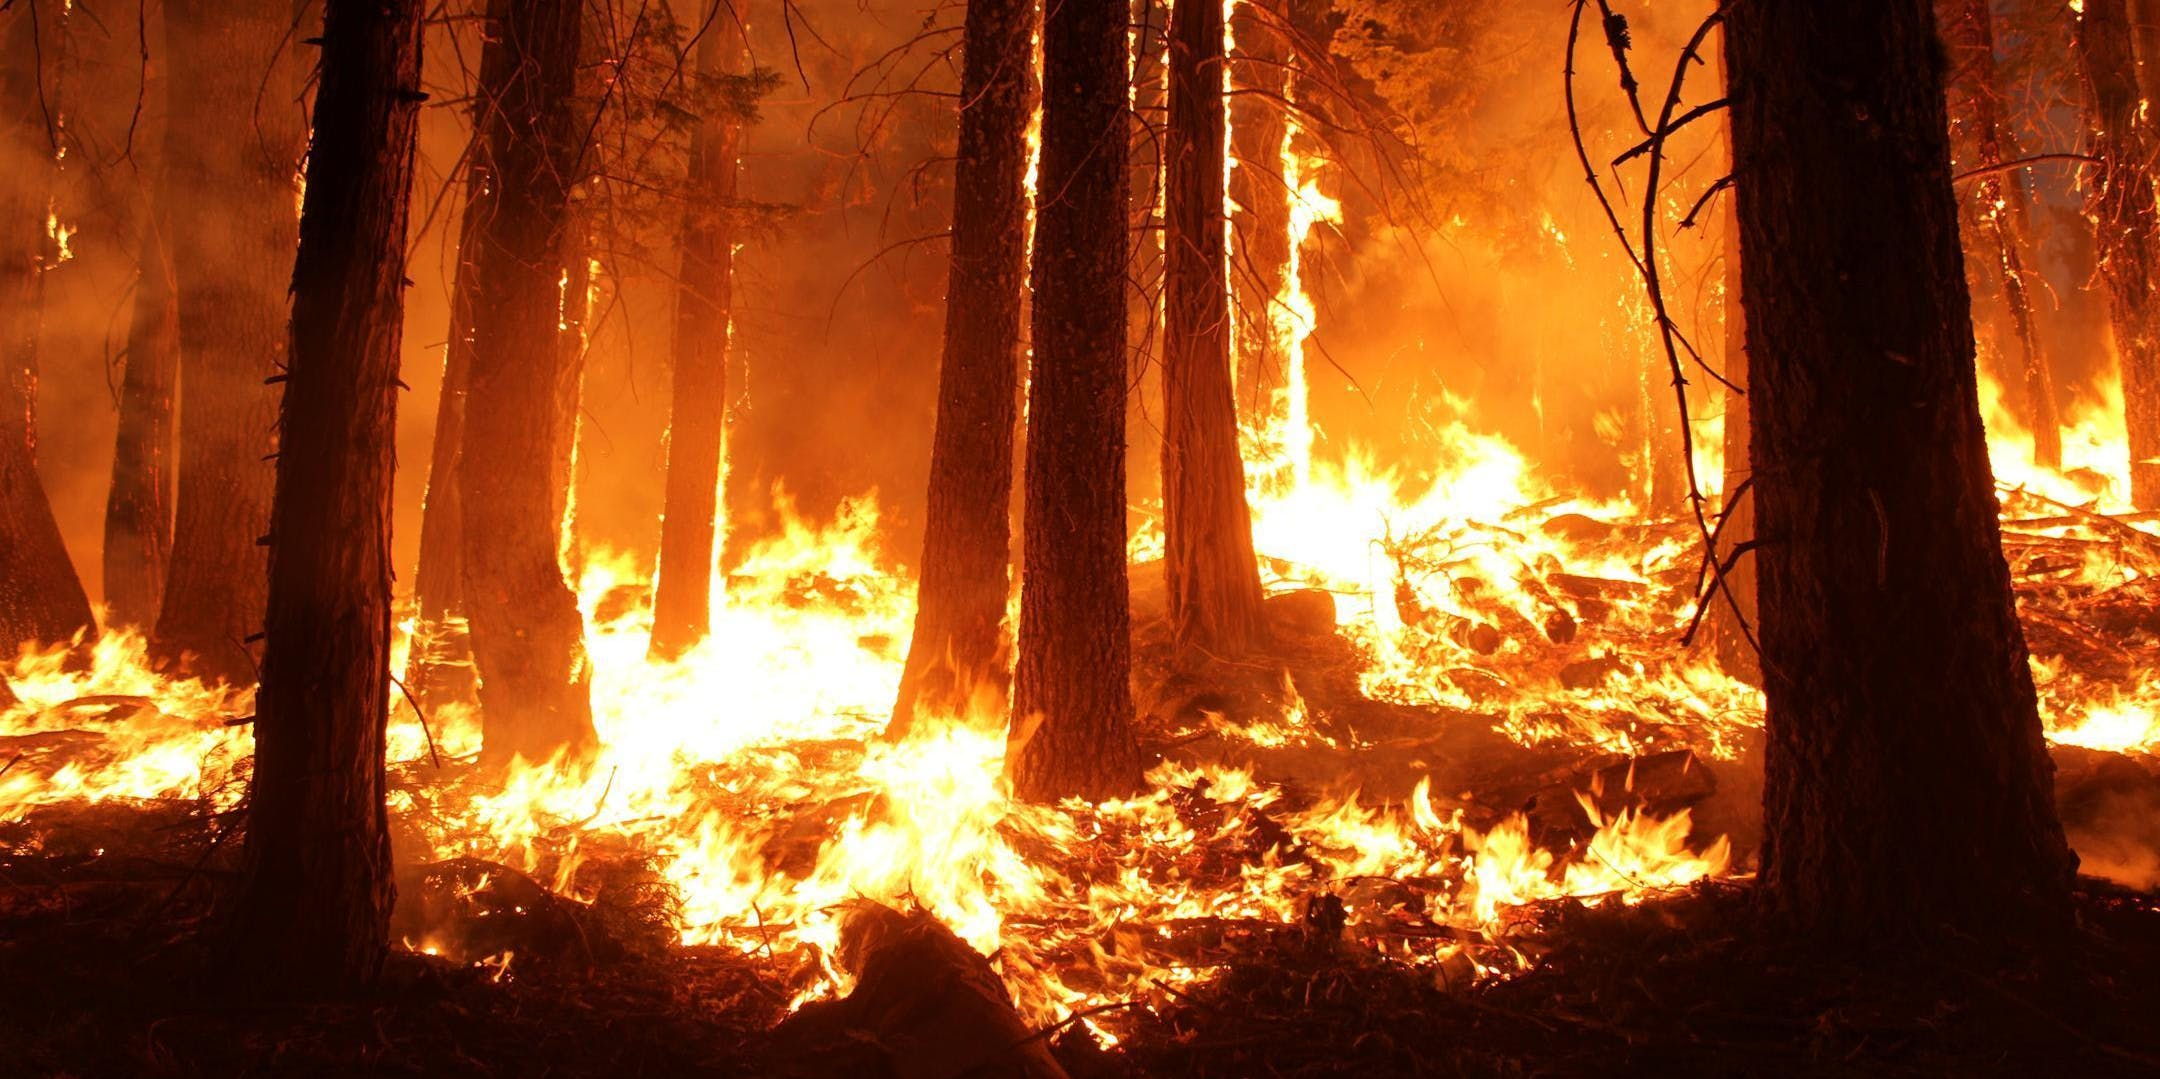 Forest fires have become more frequent and more intense as a result of climate change.